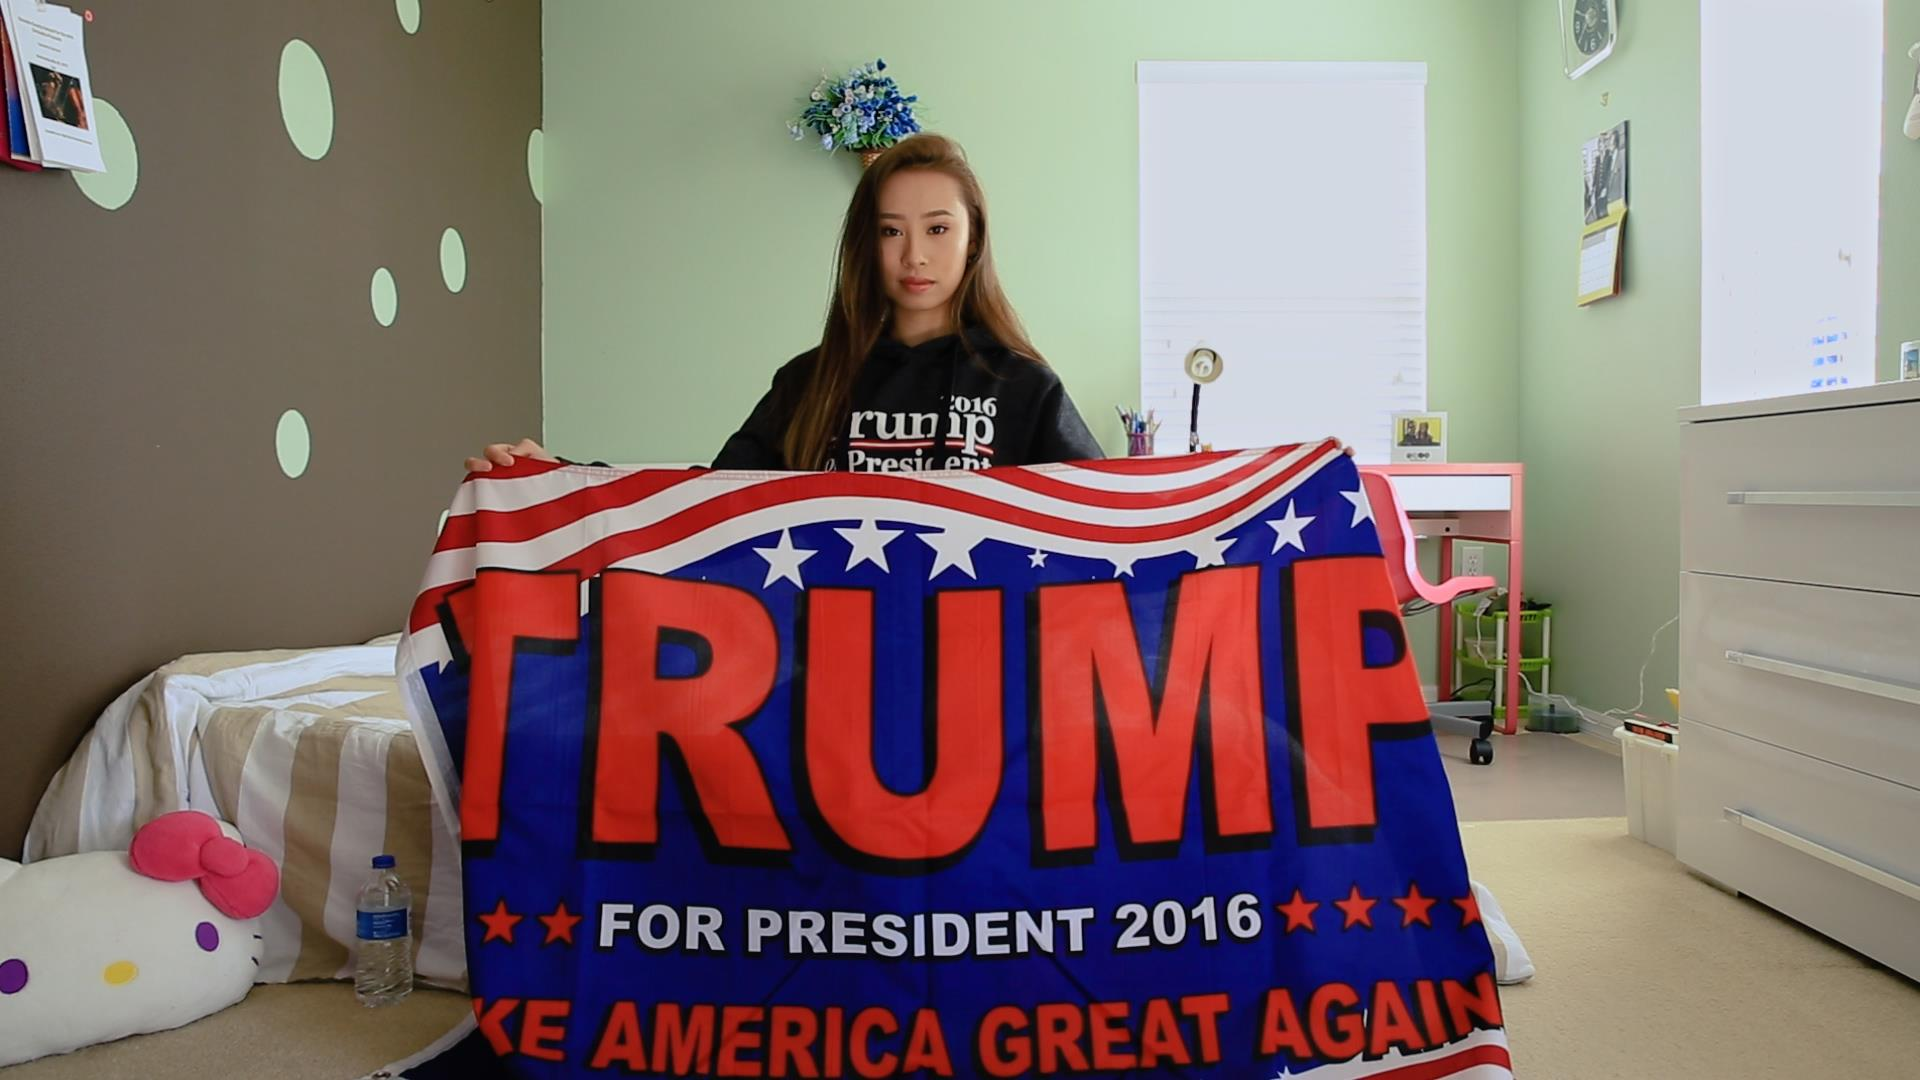 Millennials don't like Trump. Here's how they say he could win them over.